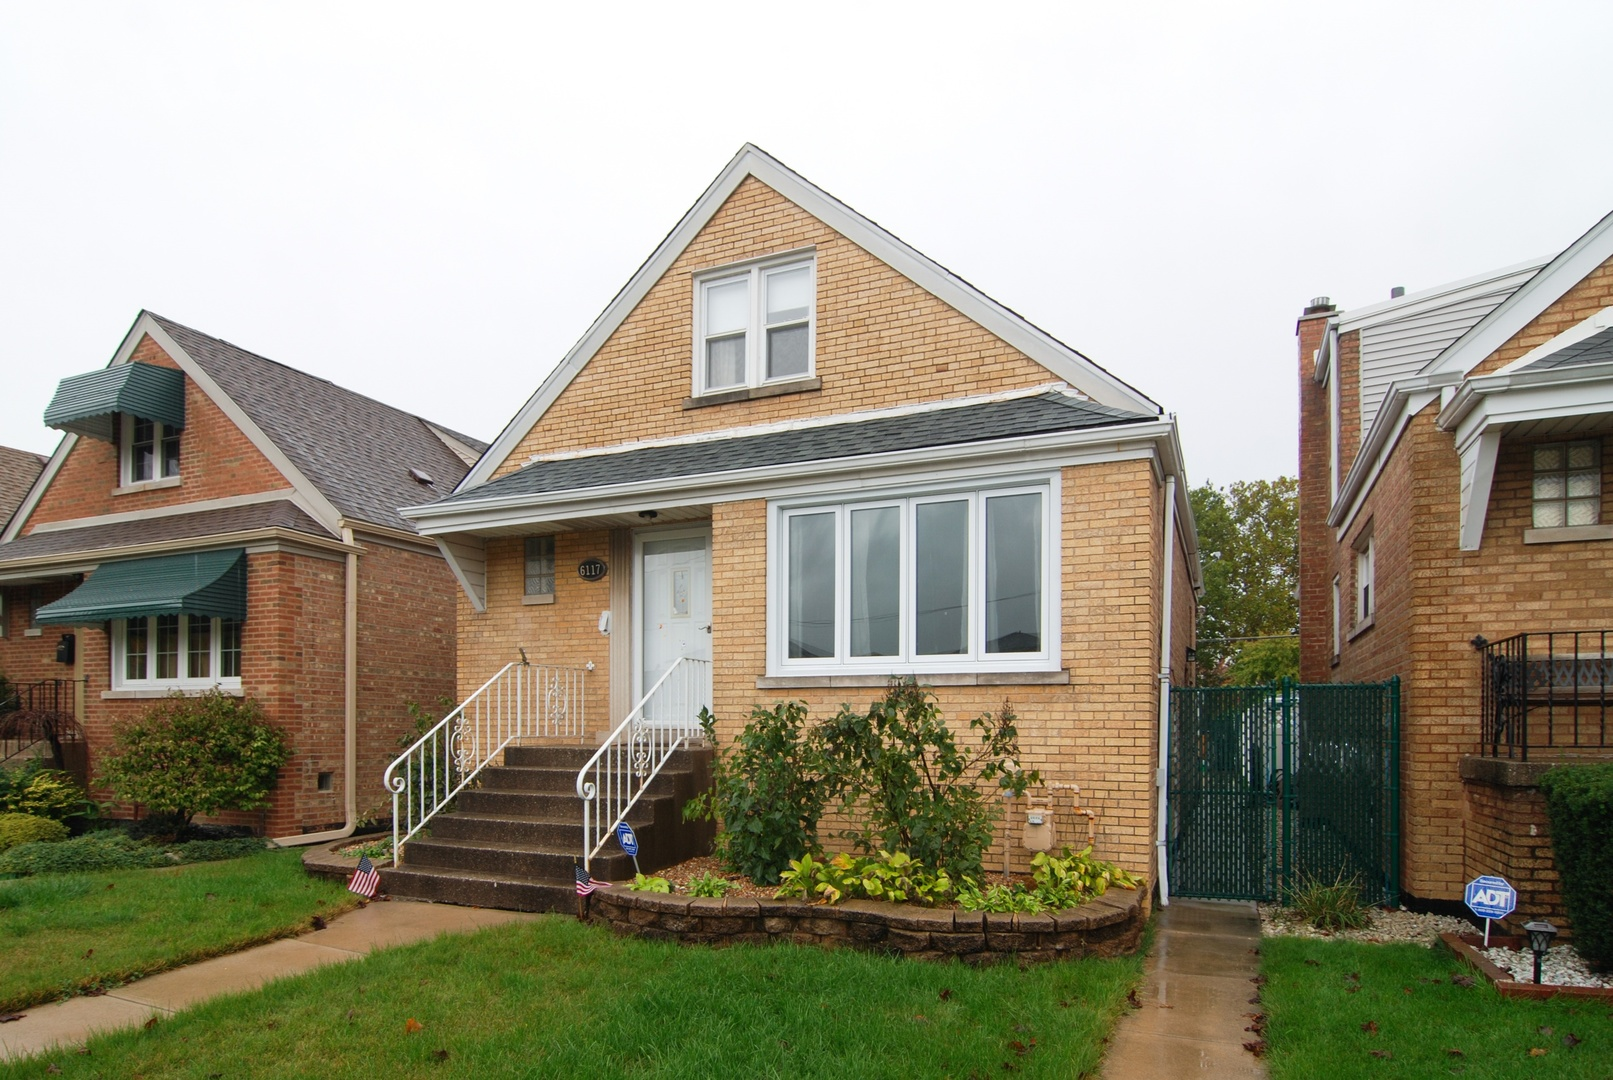 6117 S RUTHERFORD Exterior Photo